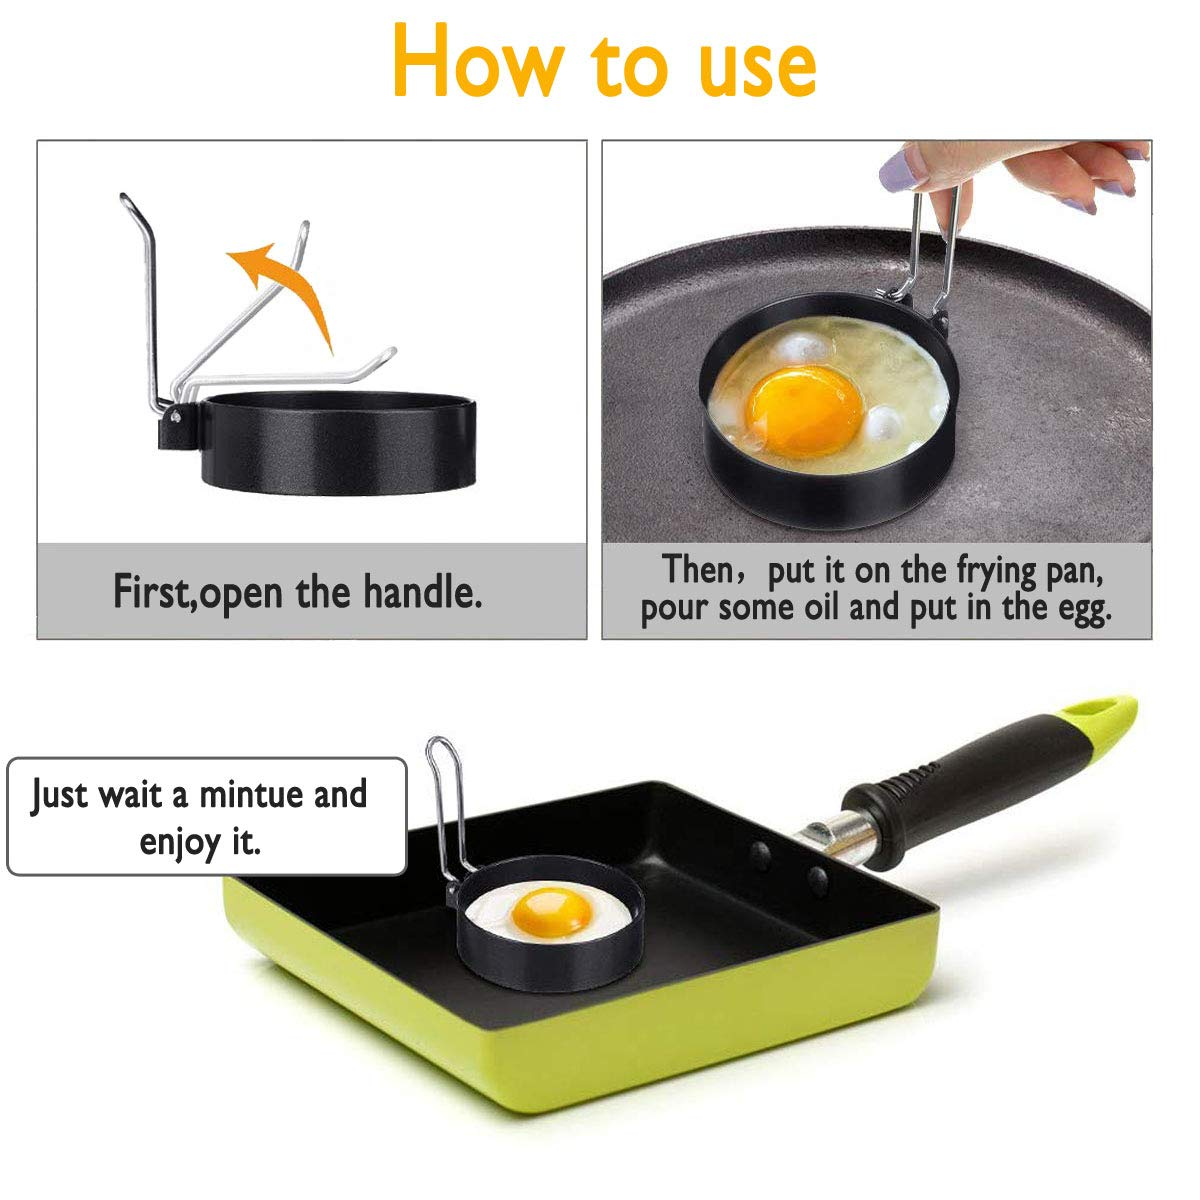 Egg Maker Molds 1 PCS Stainless Steel Fried Egg Molds Non Stick Mold Kitchen Cooking Tool for Frying McMuffin or Shaping Eggs Egg Poacher